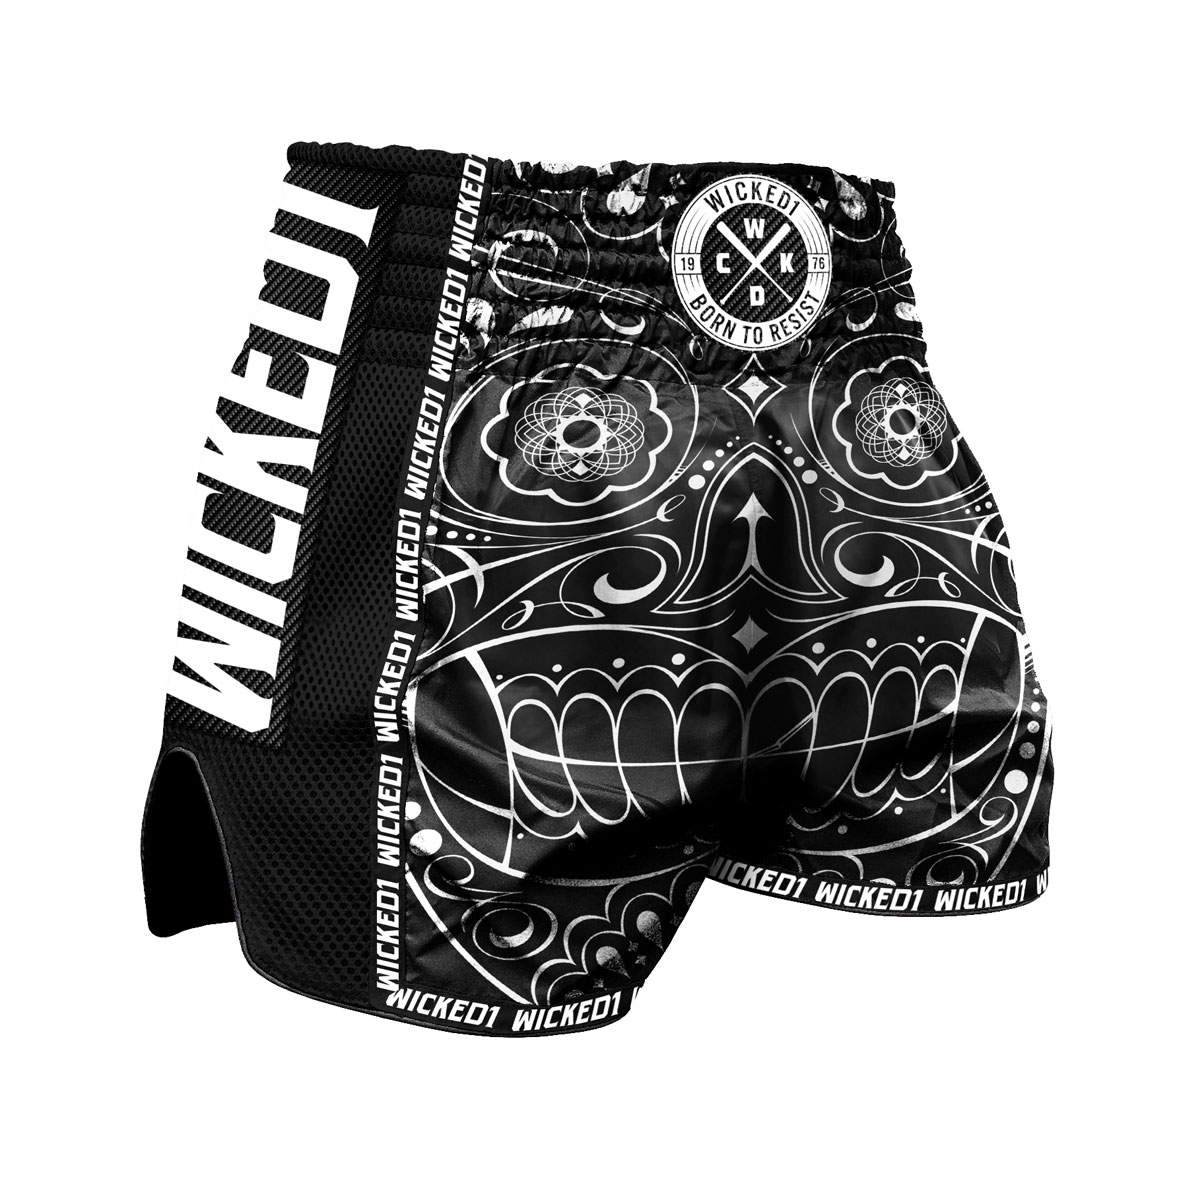 Short Wicked one skull